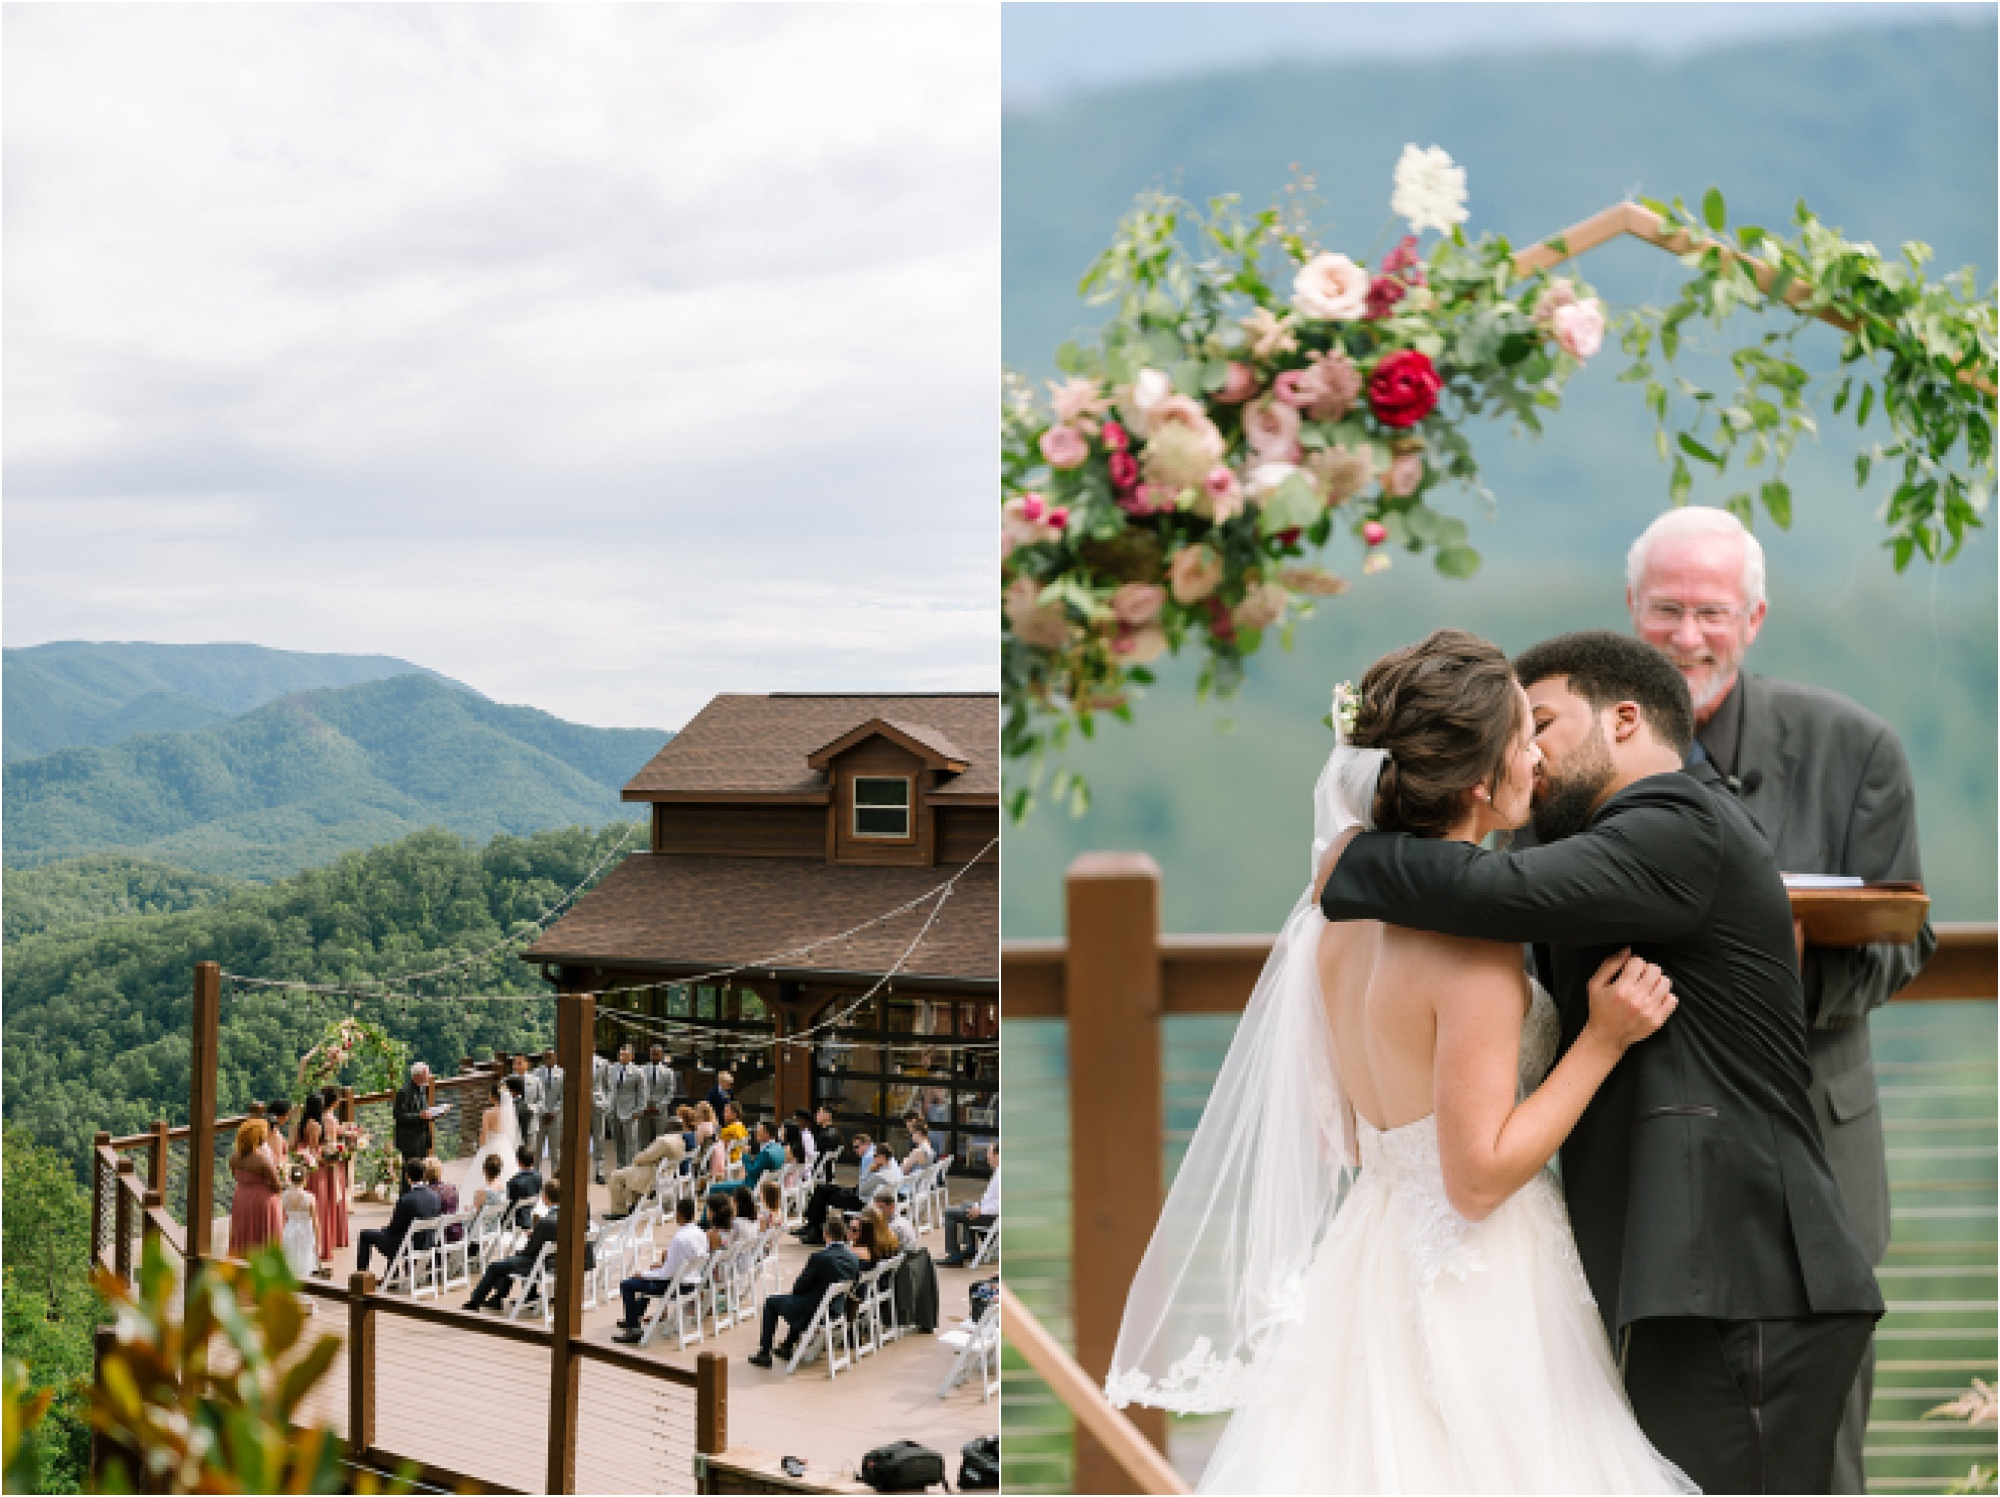 bride and groom kiss at mountaintop wedding affair in Pigeon Forge, Tennessee